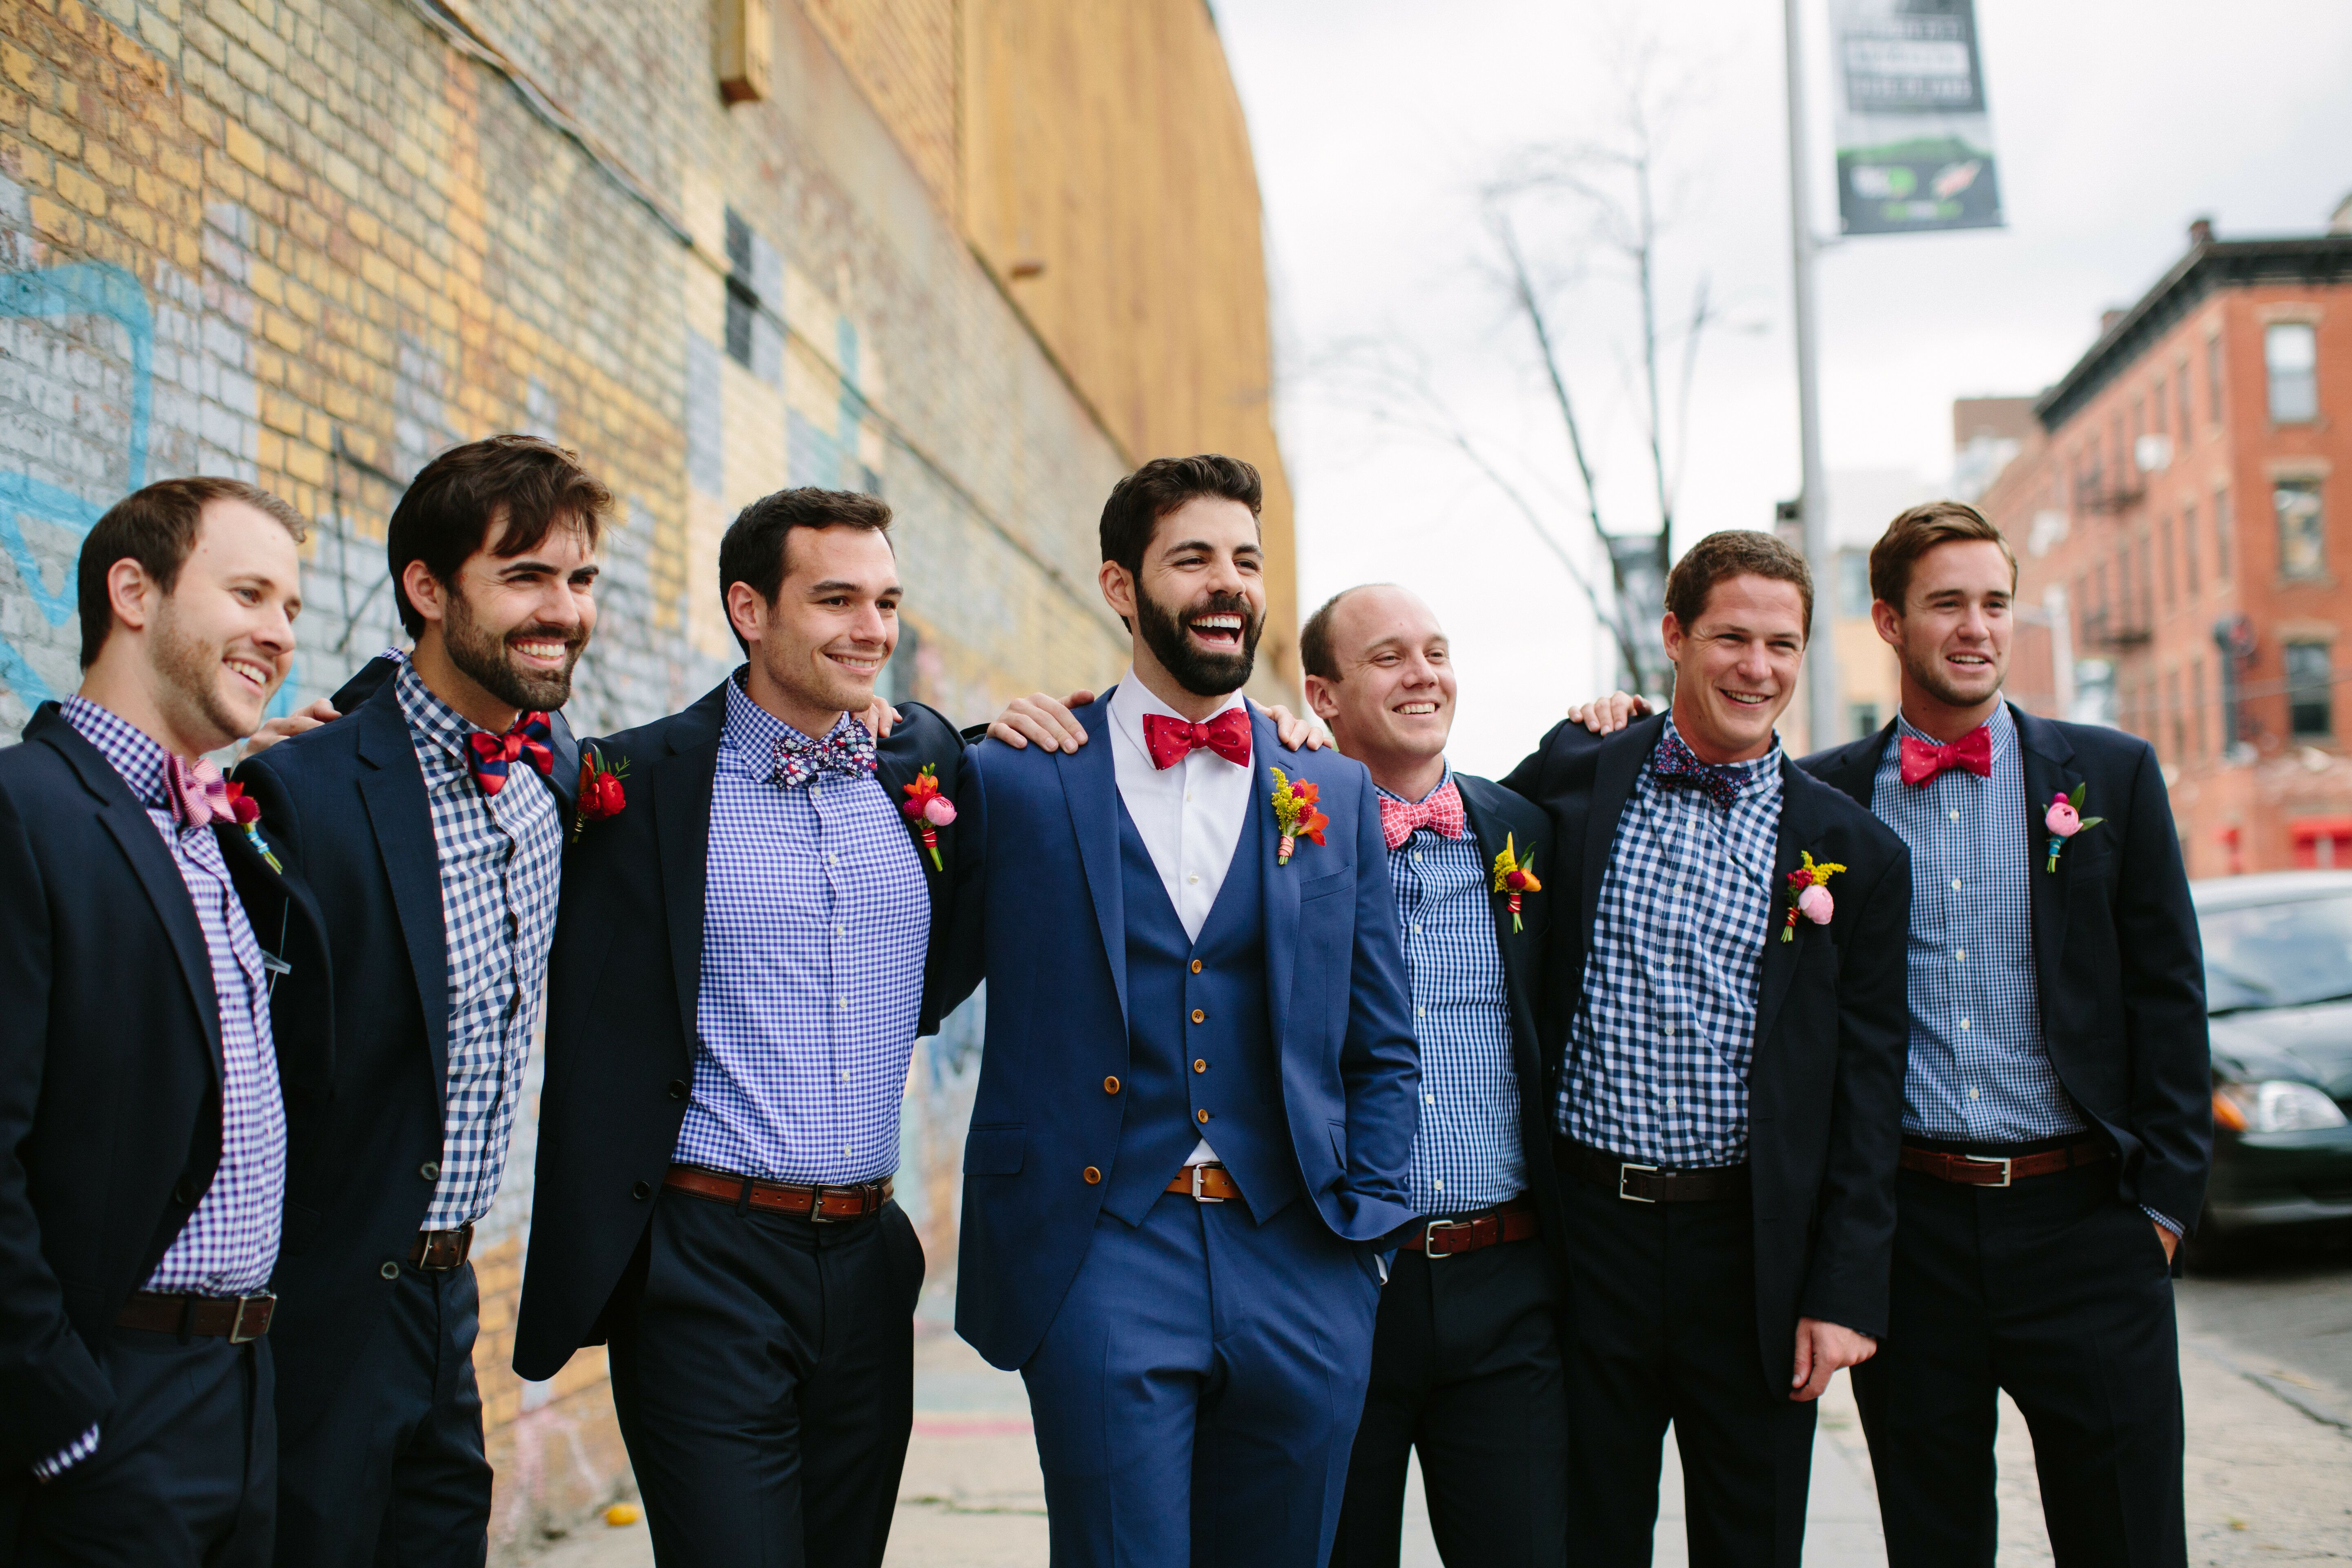 Navy Blue Groomsmen Suits With Mismatched Gingham Shirts